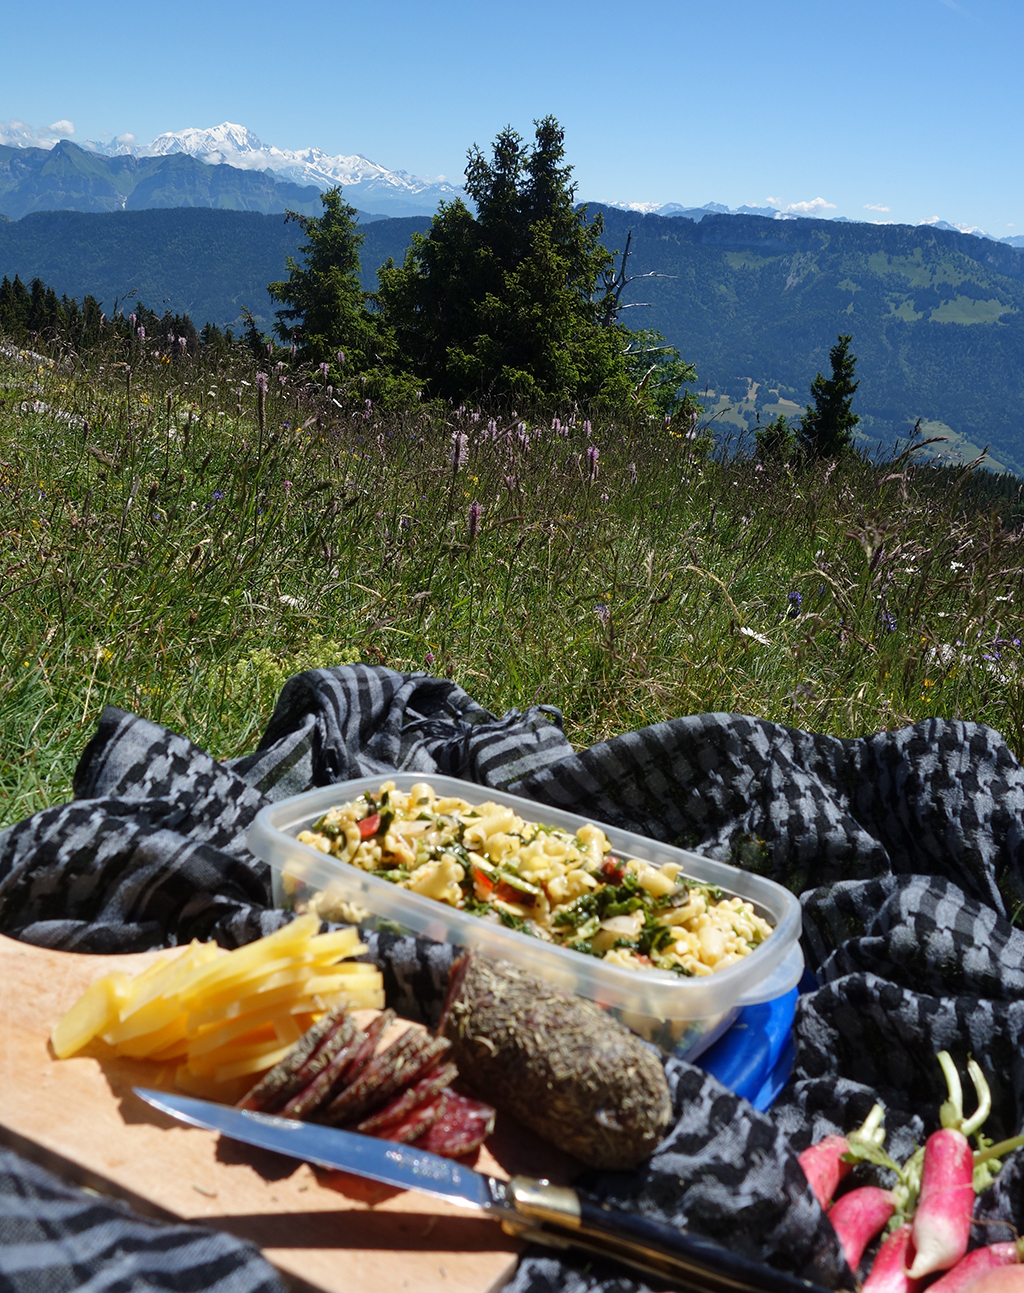 Picnicking in Semnoz